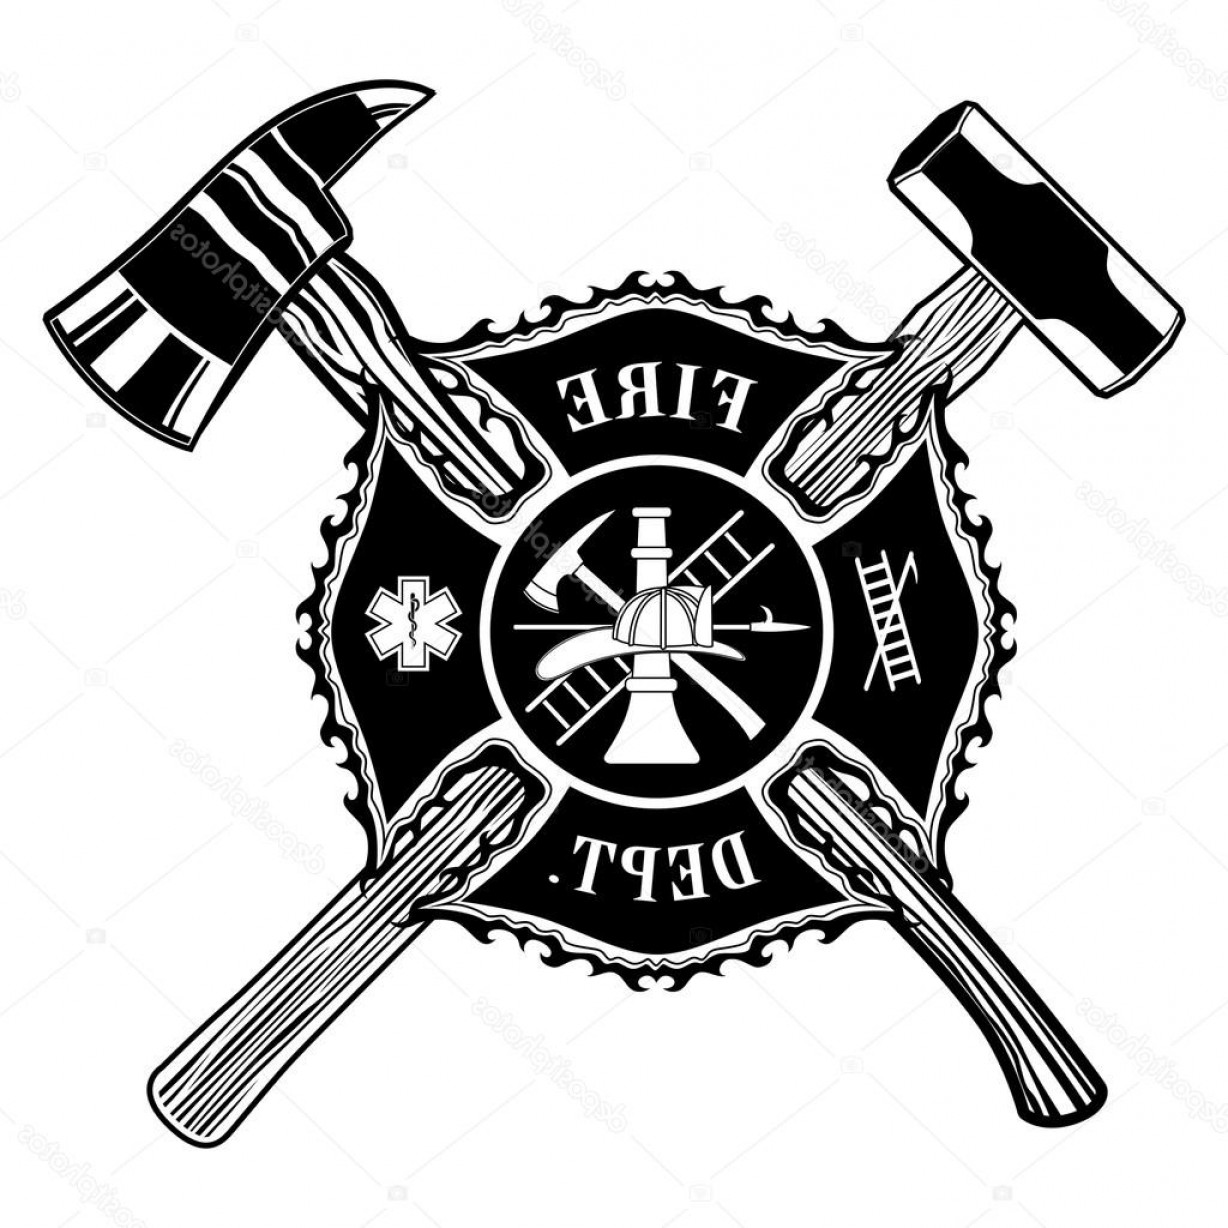 Fire Fighter Logo Vector: Stock Illustration Firefighter Cross Ax And Sledge